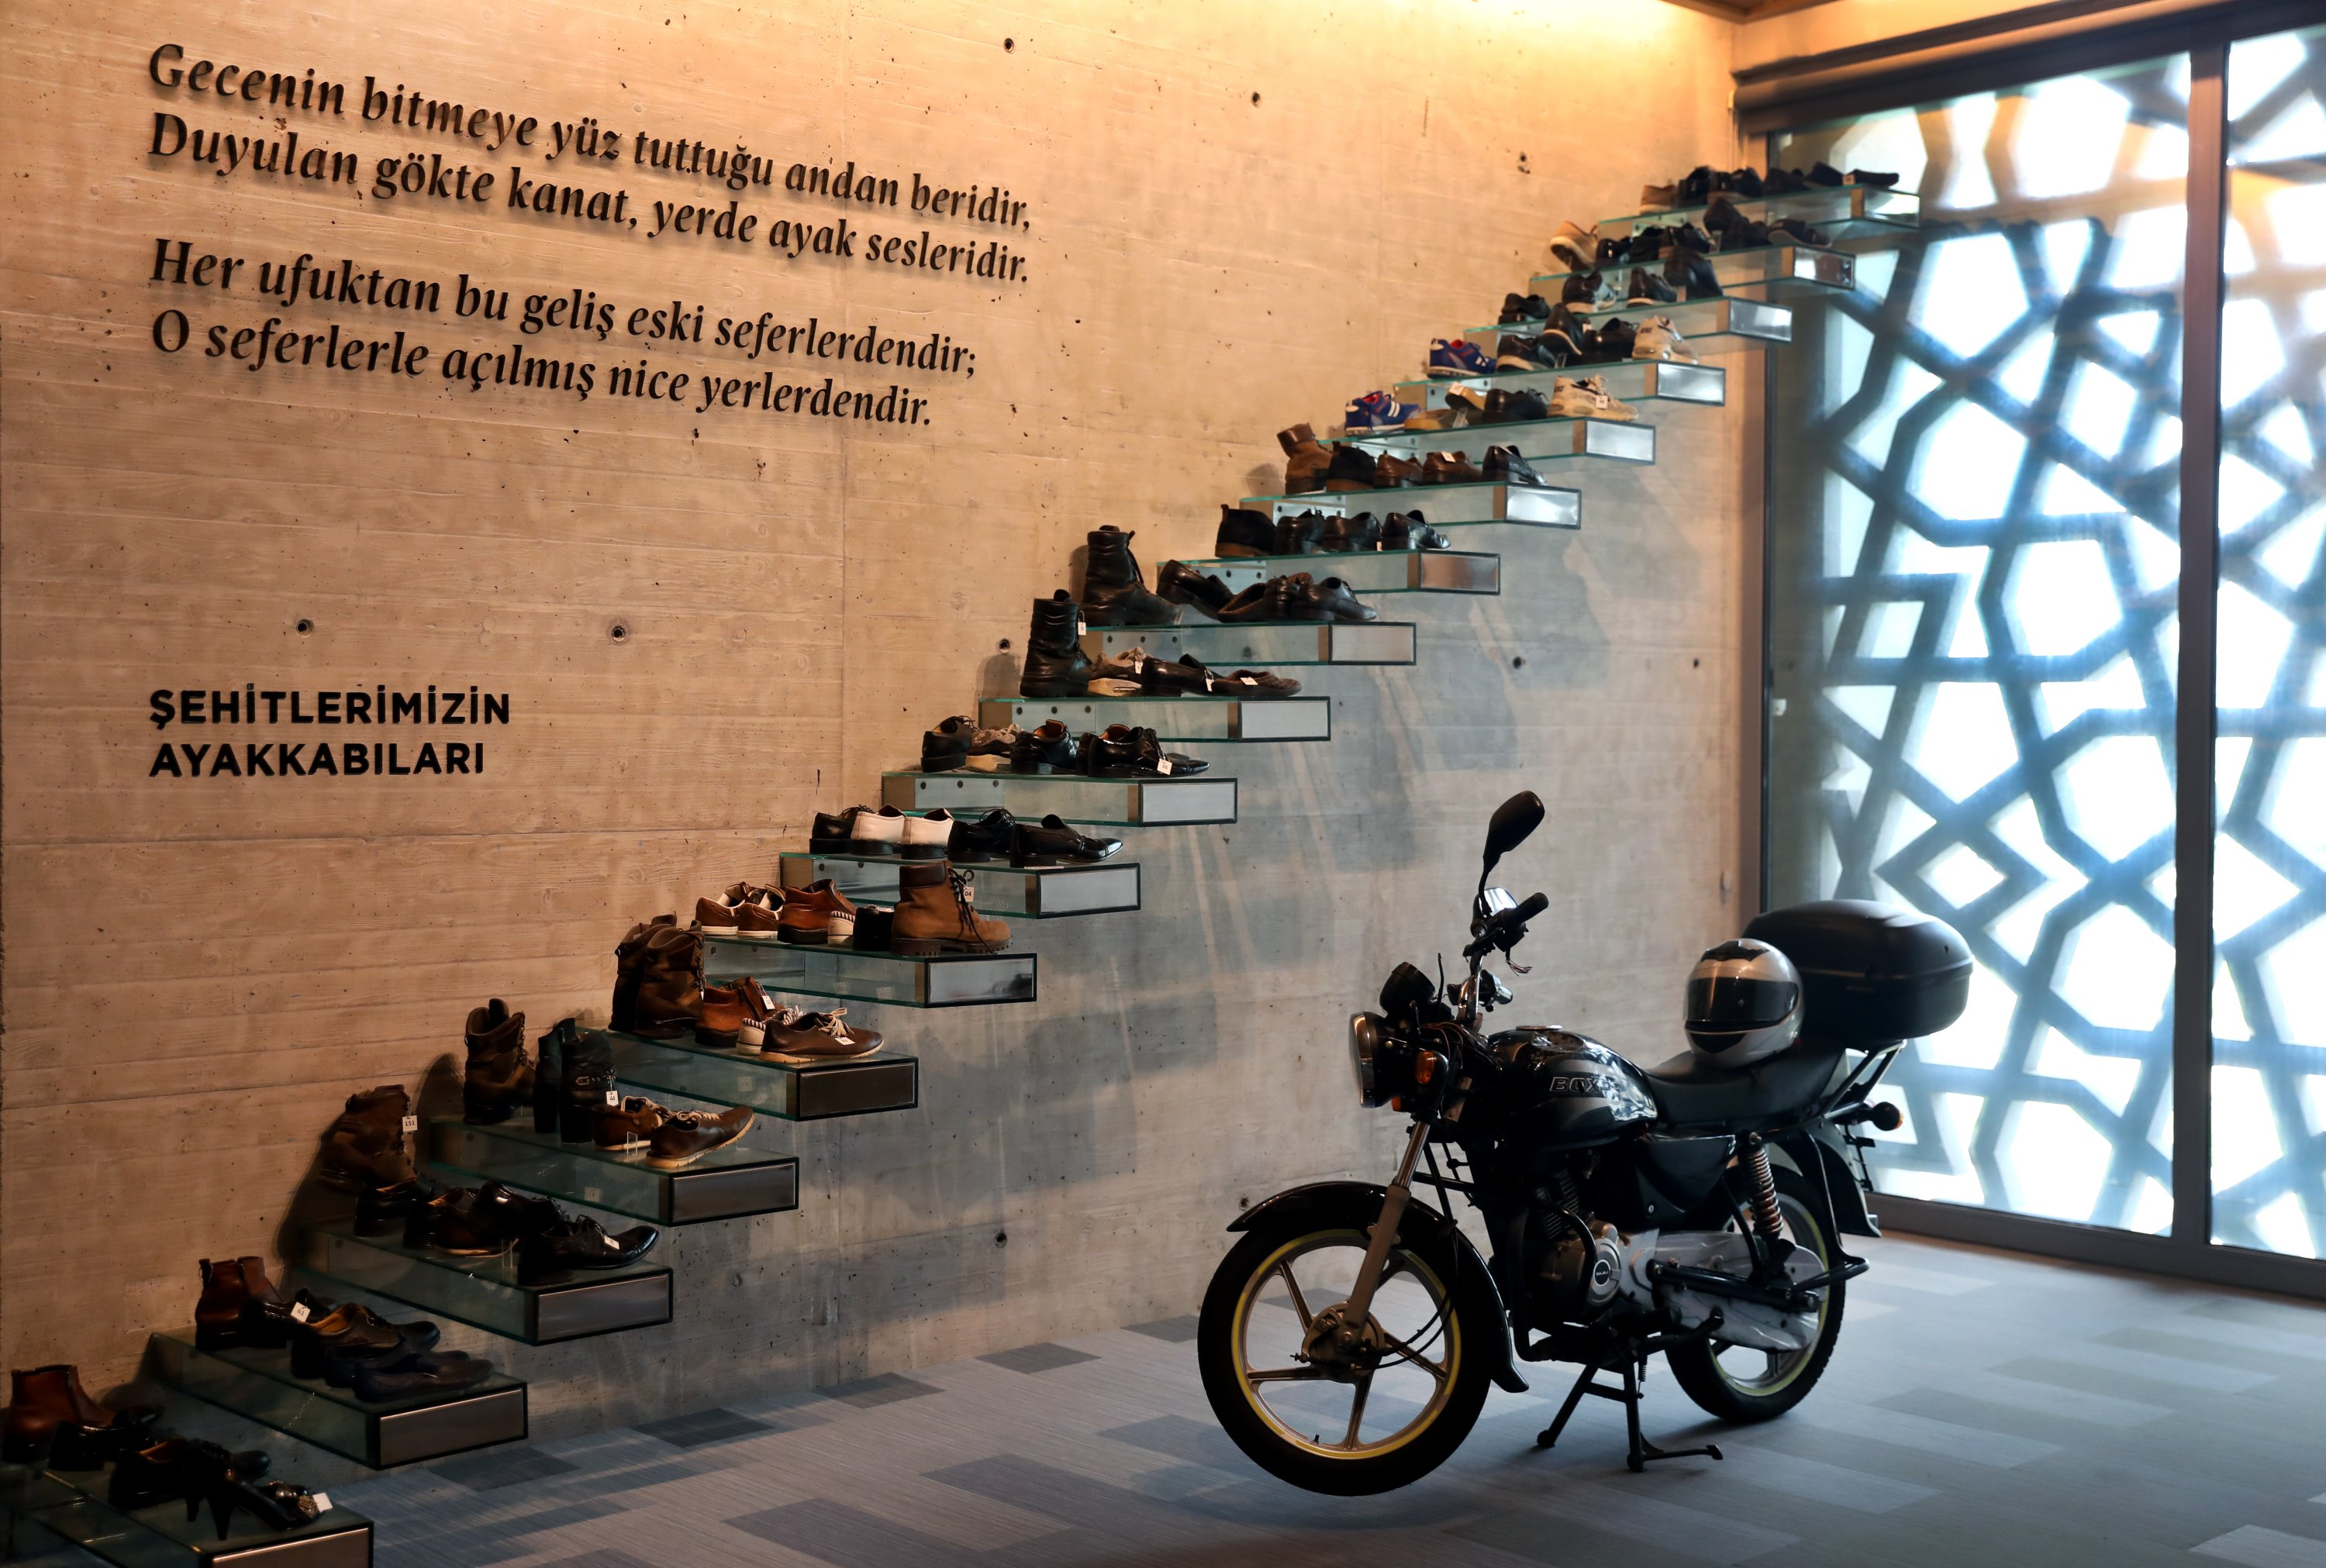 The shoes of July 15 martyrs are seen at the museum in Istanbul, July 13, 2020 (AA PHOTO)